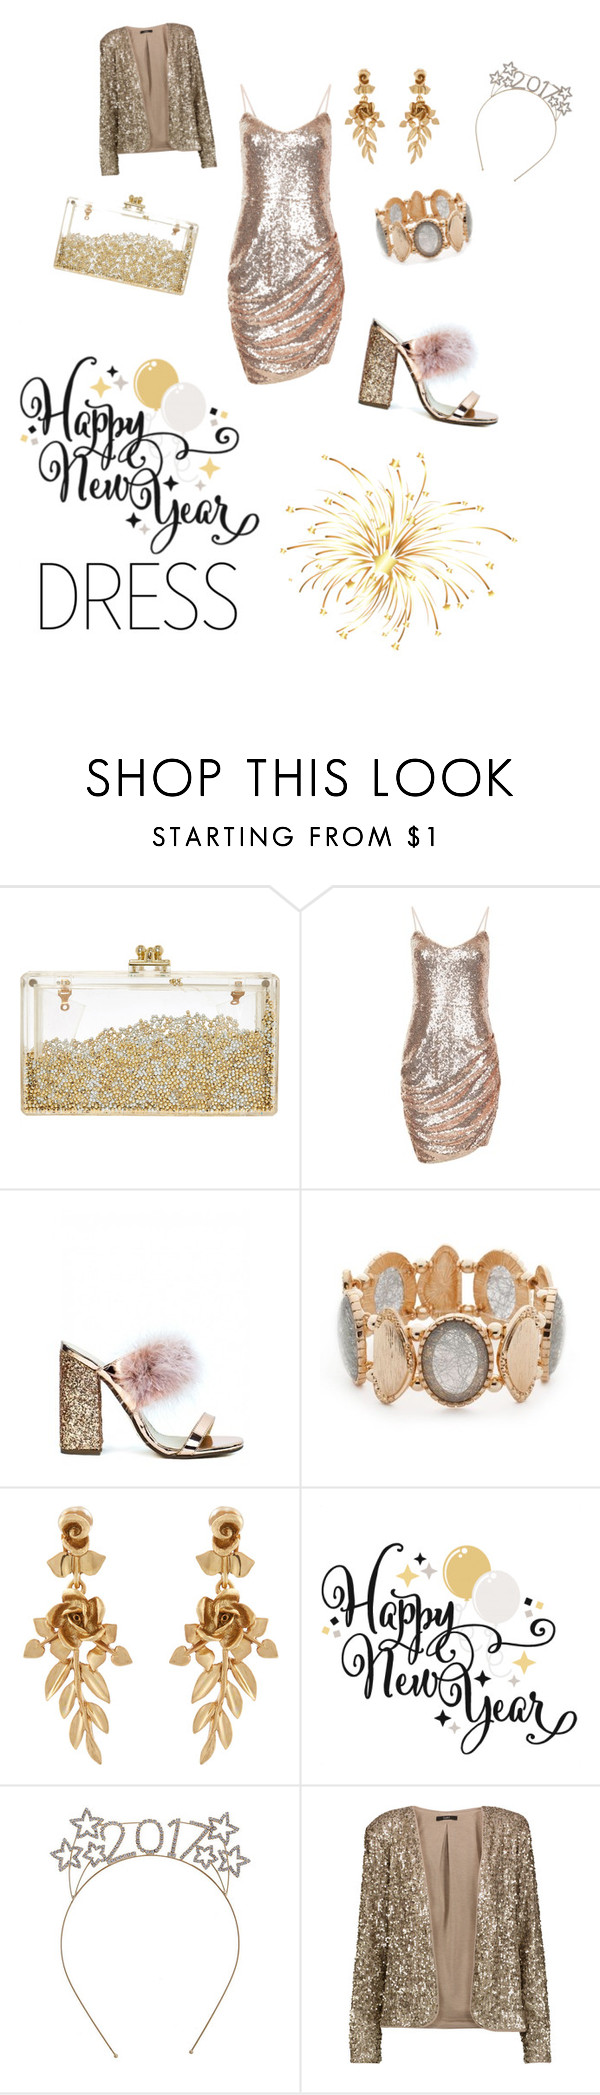 """New years party dress"" by neonaila ❤ liked on Polyvore featuring Ruby Rd., Oscar de la Renta and Tart"